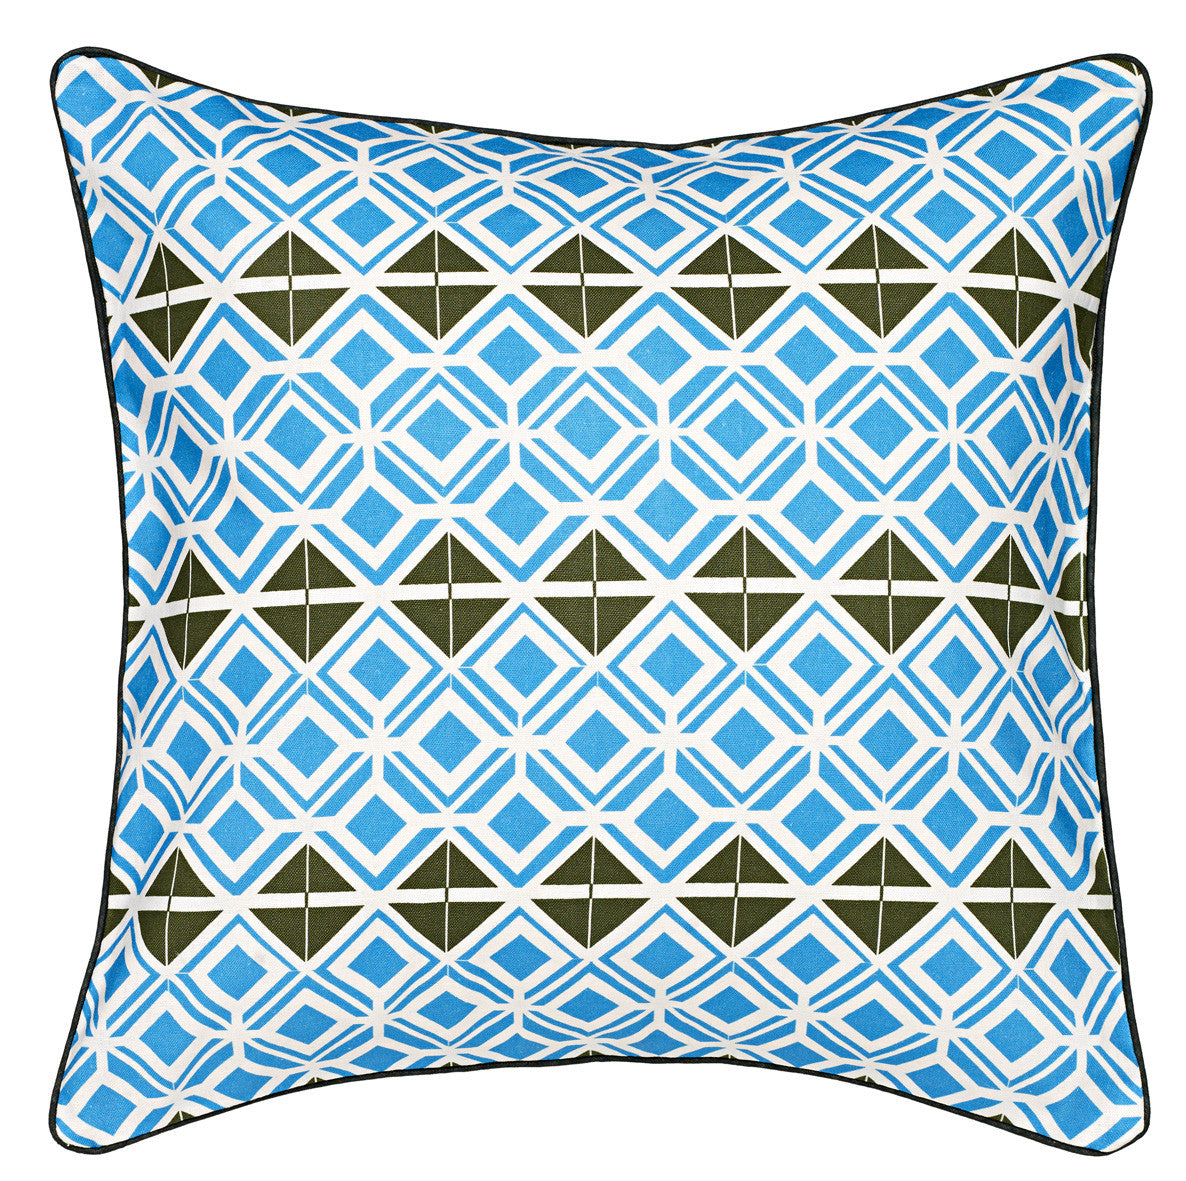 Glasswork Geometric Pattern Linen Decorative Throw Pillow Turquoise Blue & Olive Green Ships from Canada worldwide including the USA